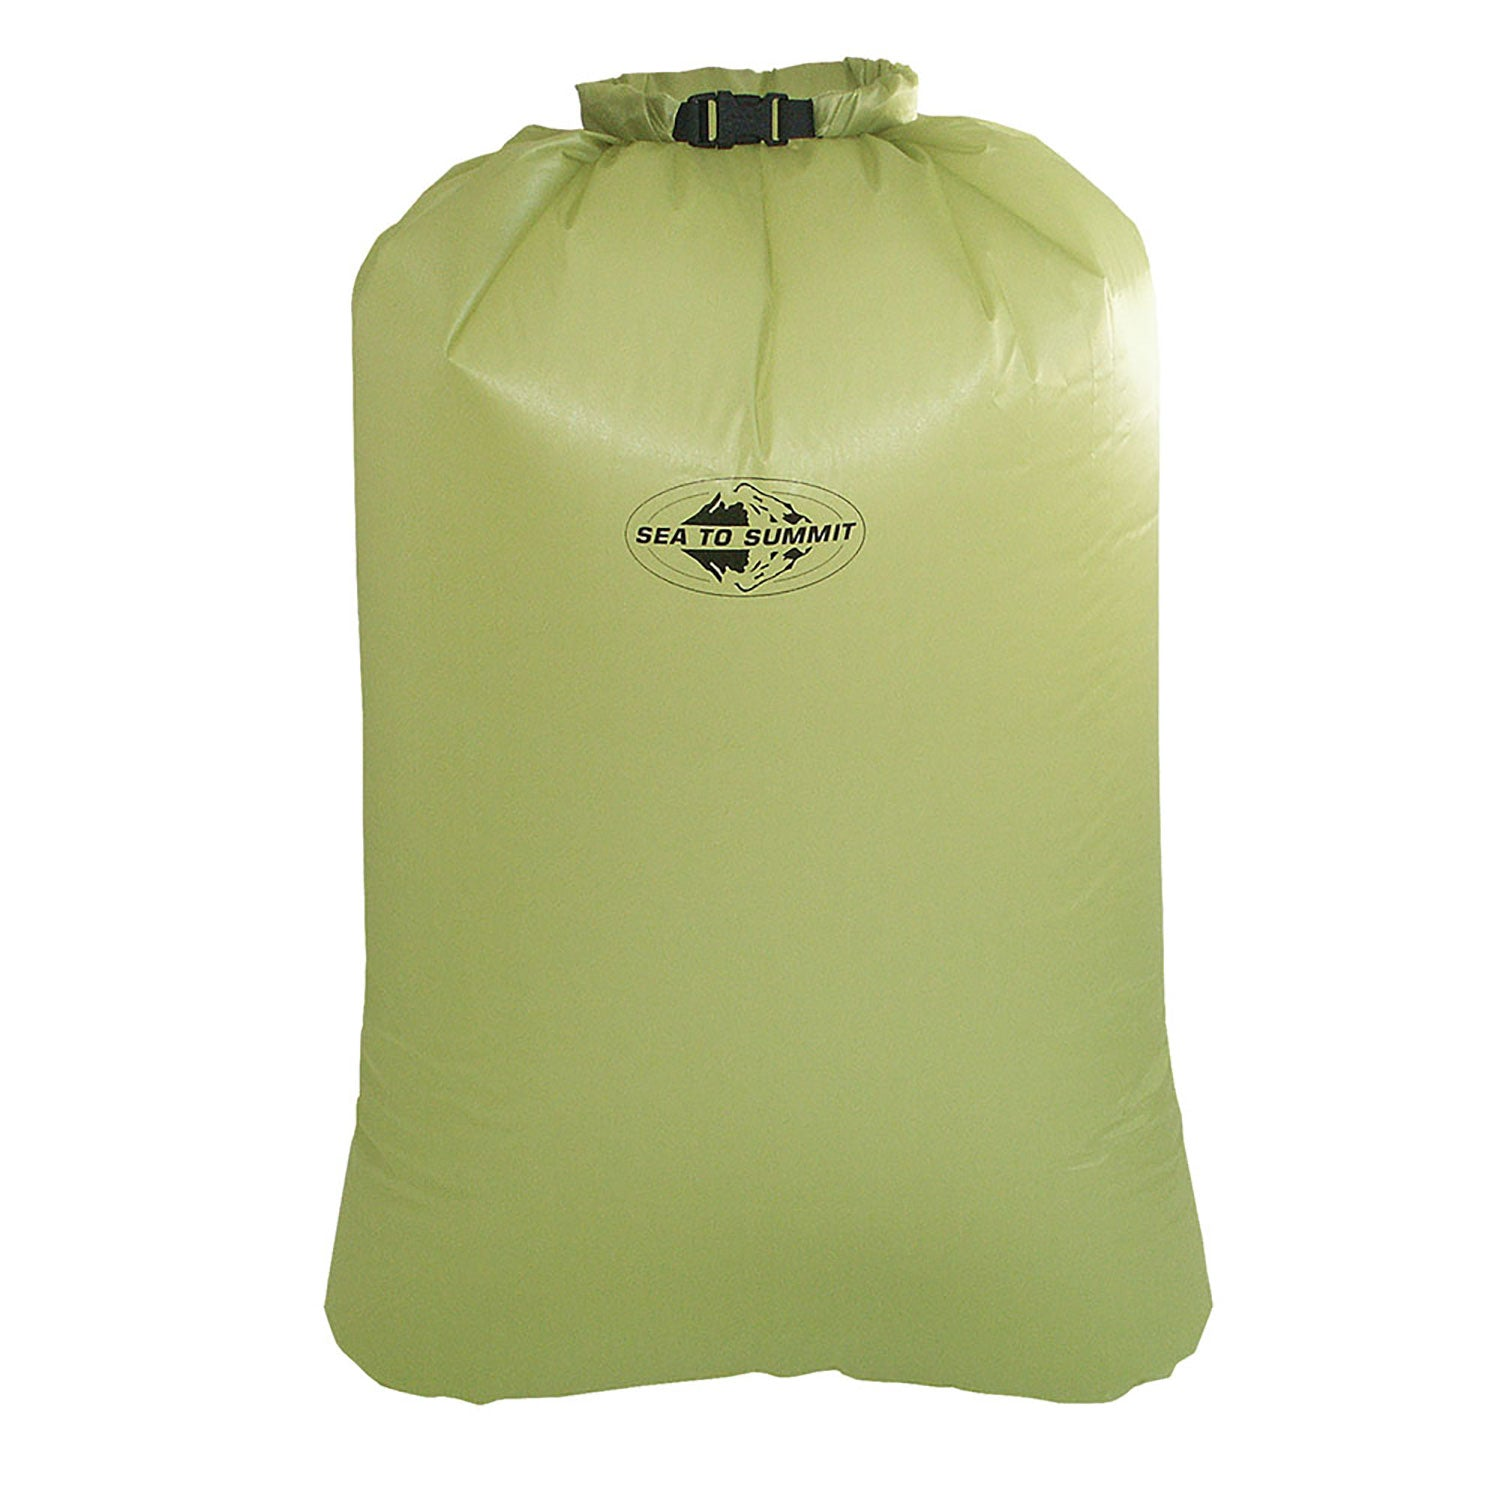 b3ebee8c44c https   www.altitude-sports.com products sea-to-summit-stuff-sack-xxl ...